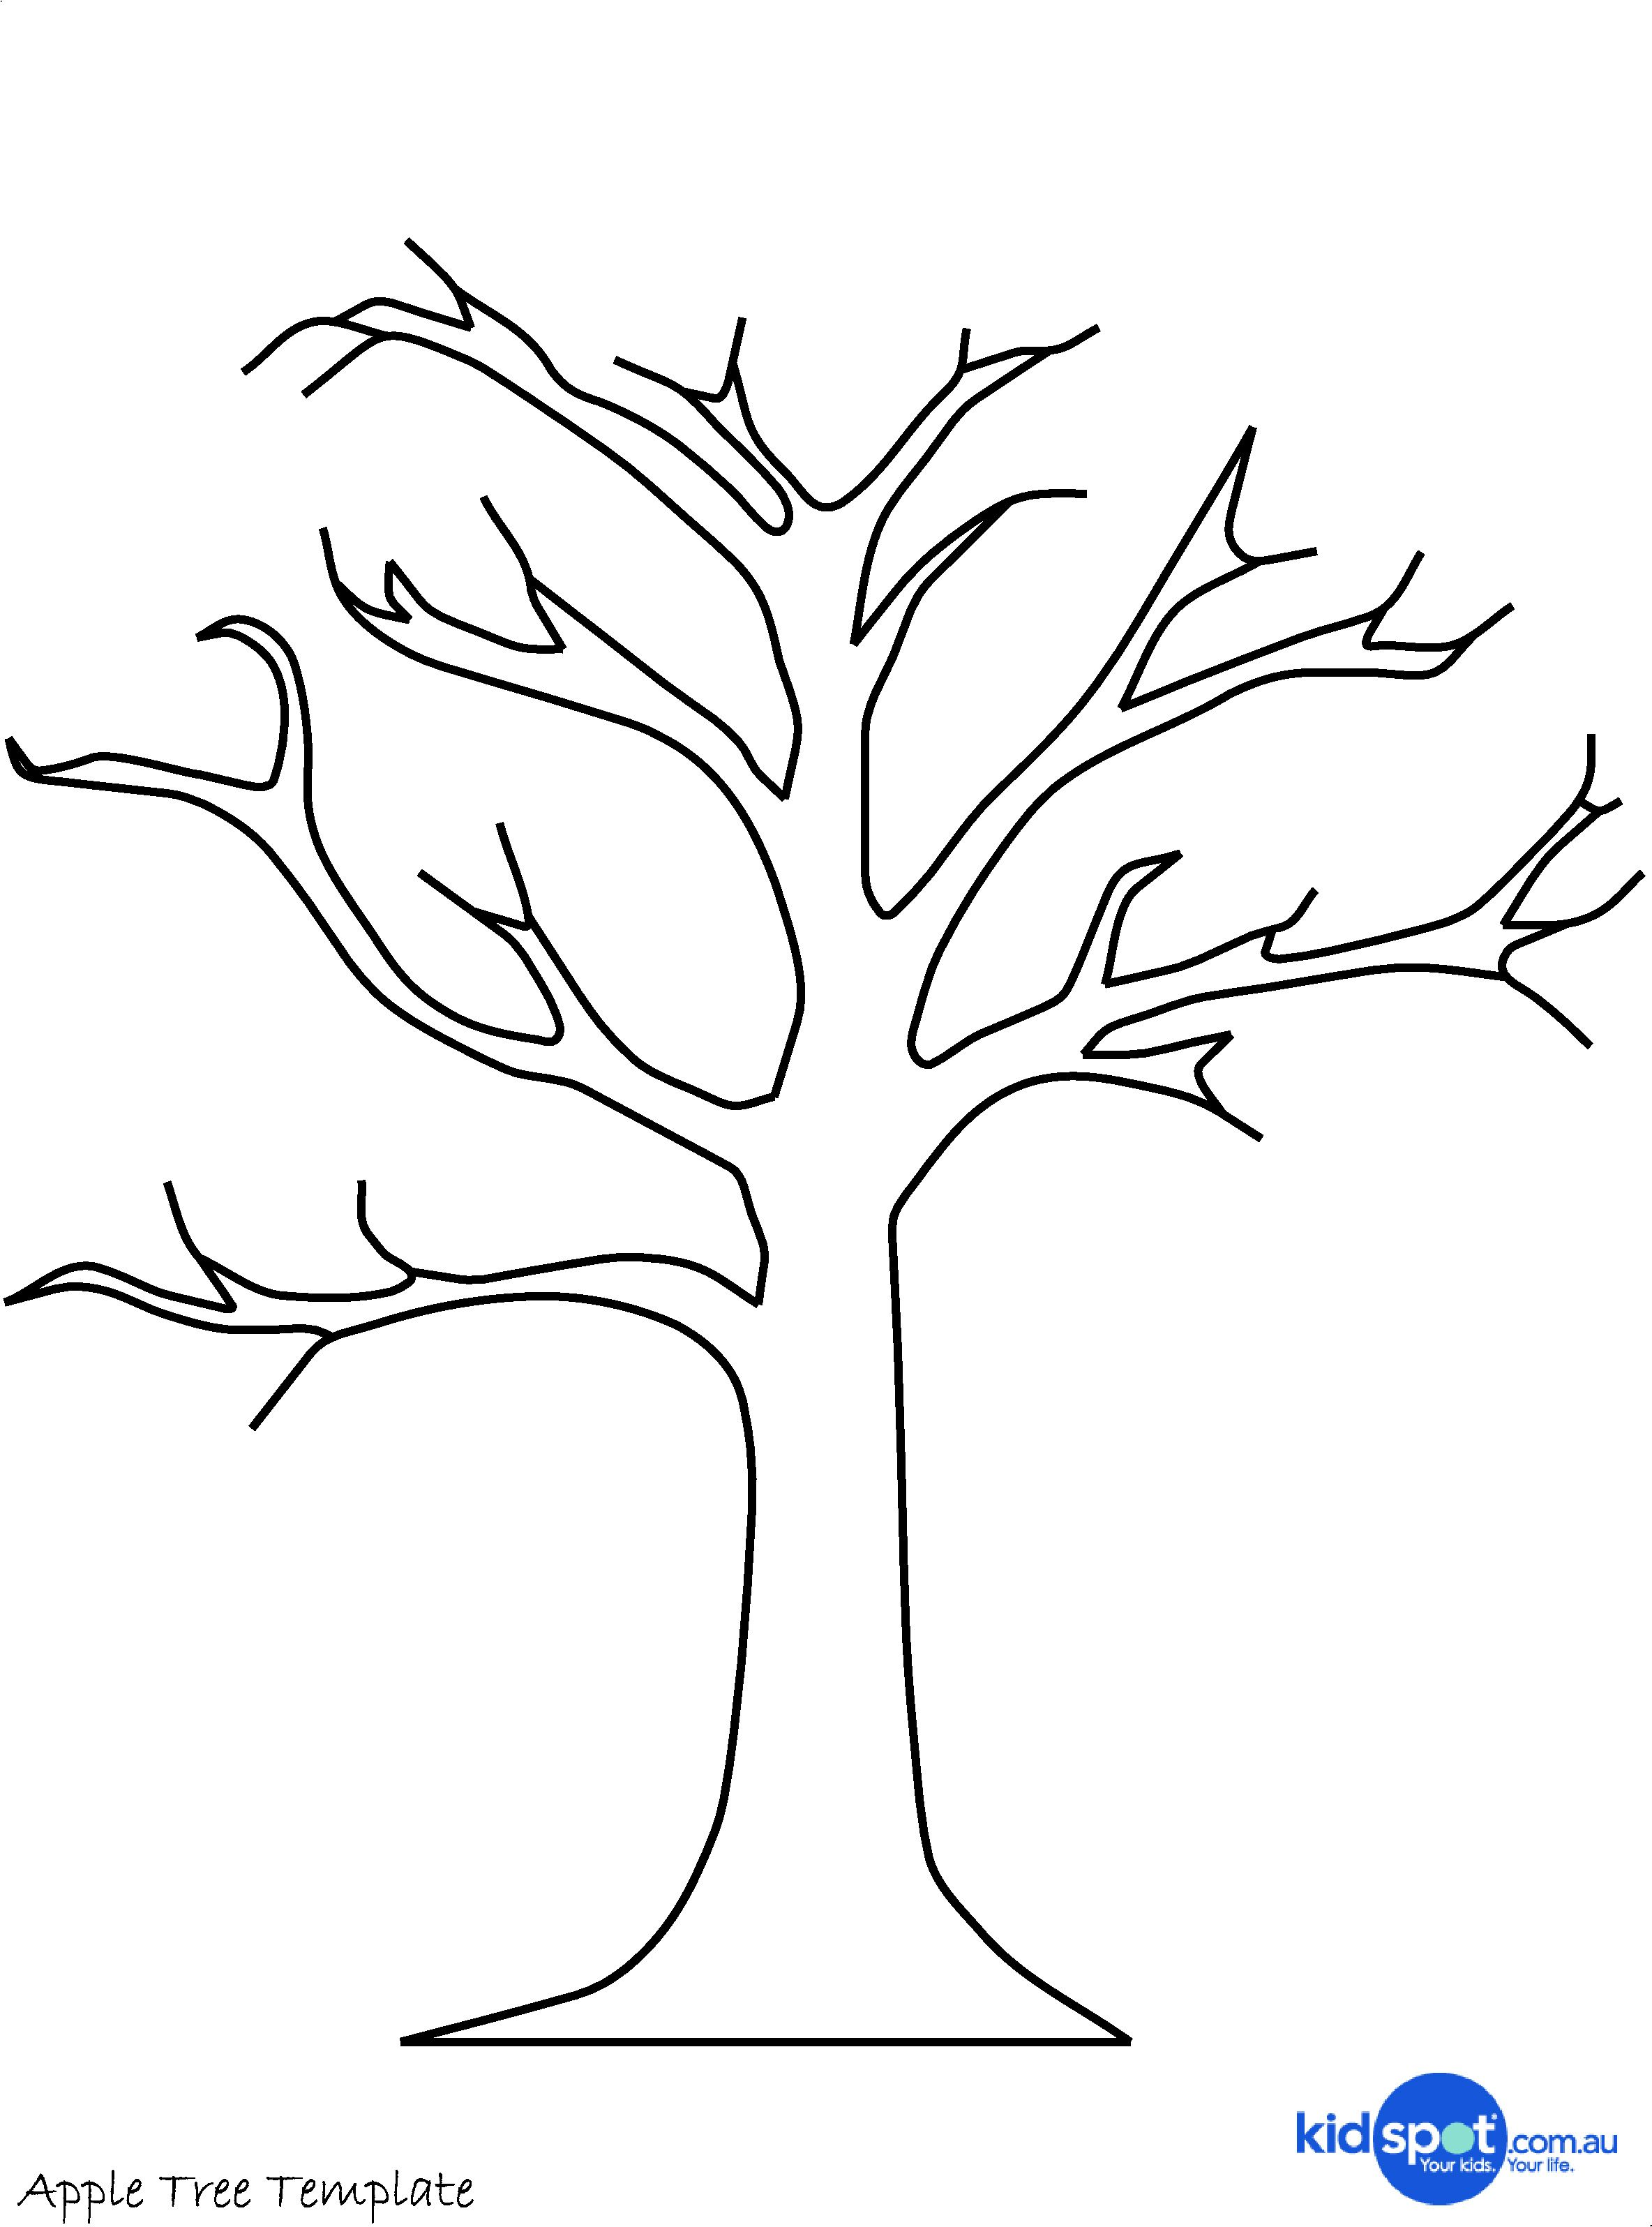 Thankful Tree Template Feel Free To Print Out The Tree